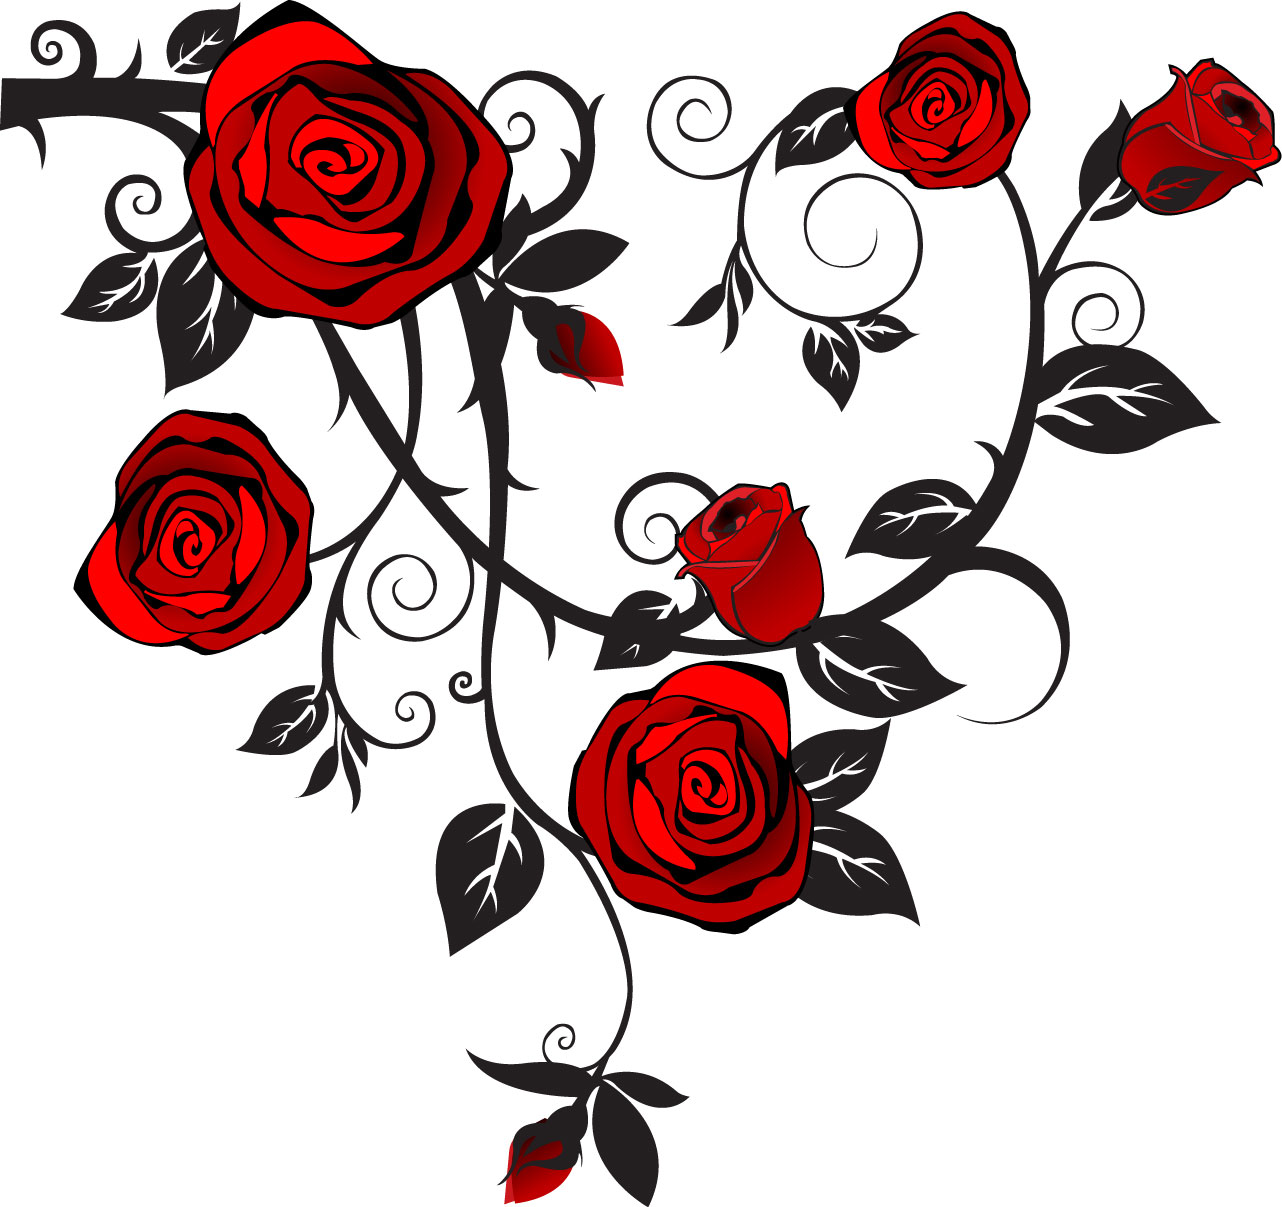 Rose image - vector clip art online, royalty free & public domain